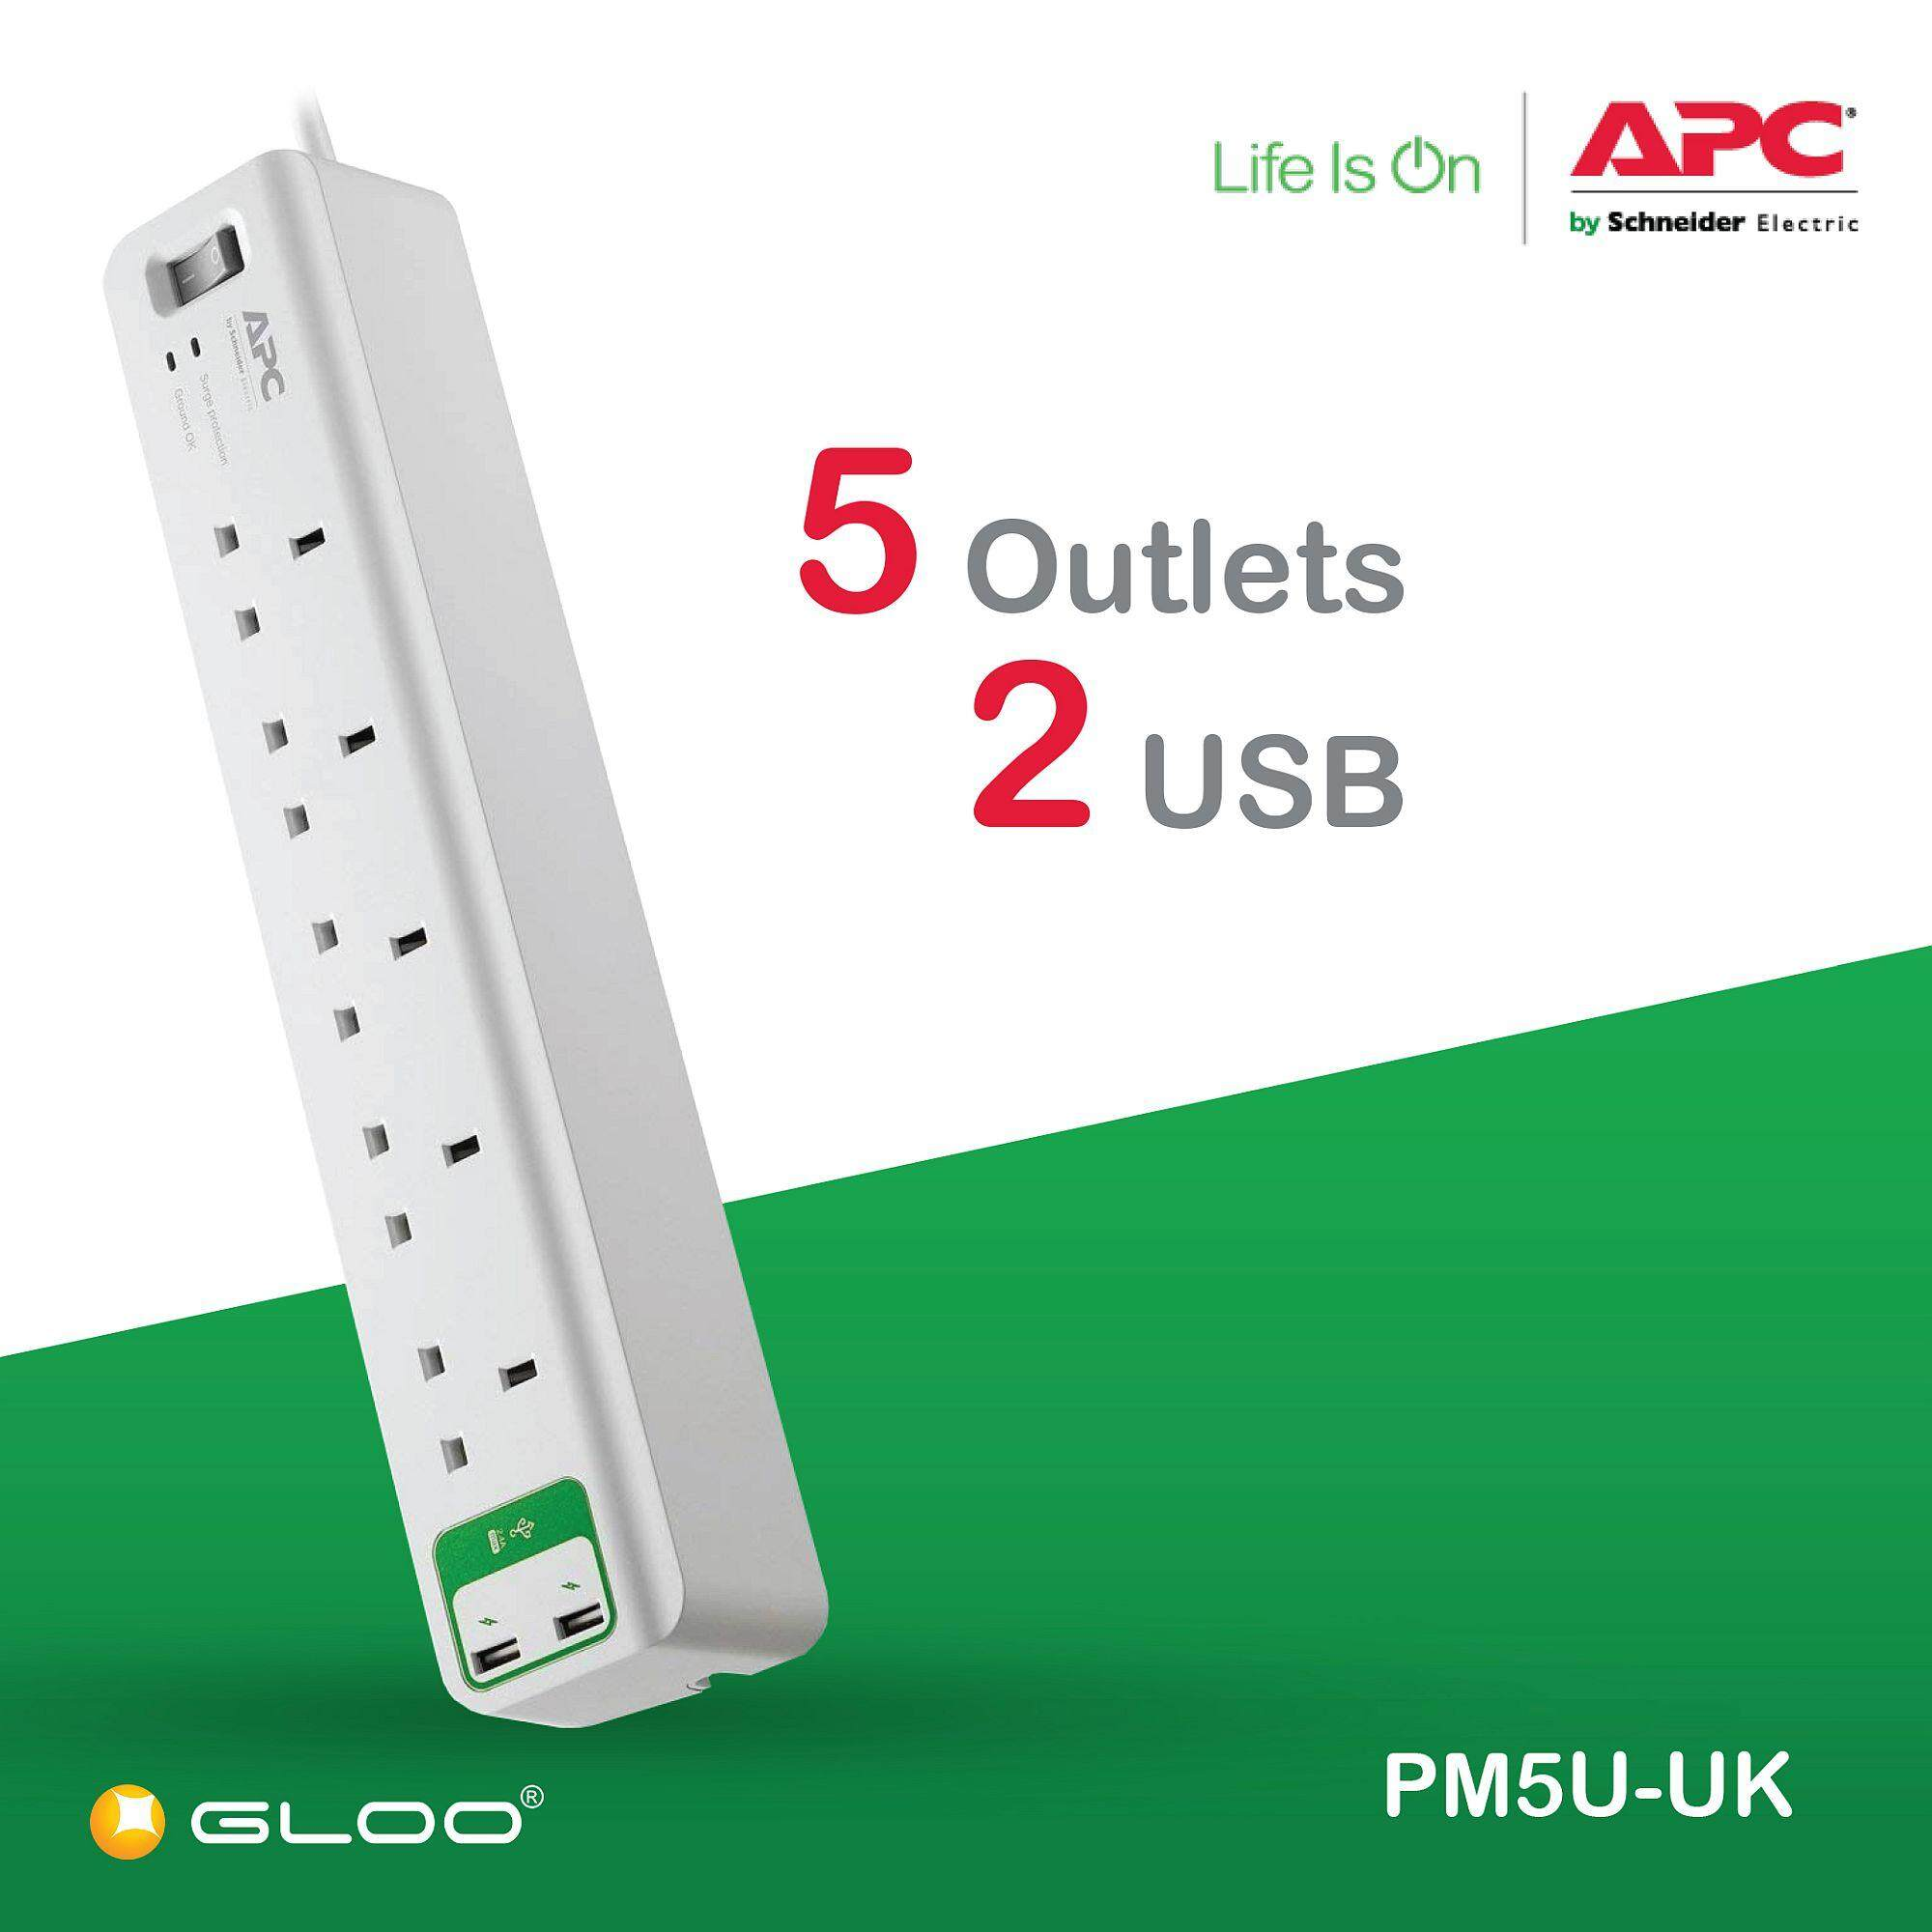 APC Essential SurgeArrest 5 outlets with 5V, 2.4A 2 port USB Charger 230V UK PM5U-UK - White [Free RM20 BHP Petrol Voucher from 29 Aug - 16 Sept 2019]